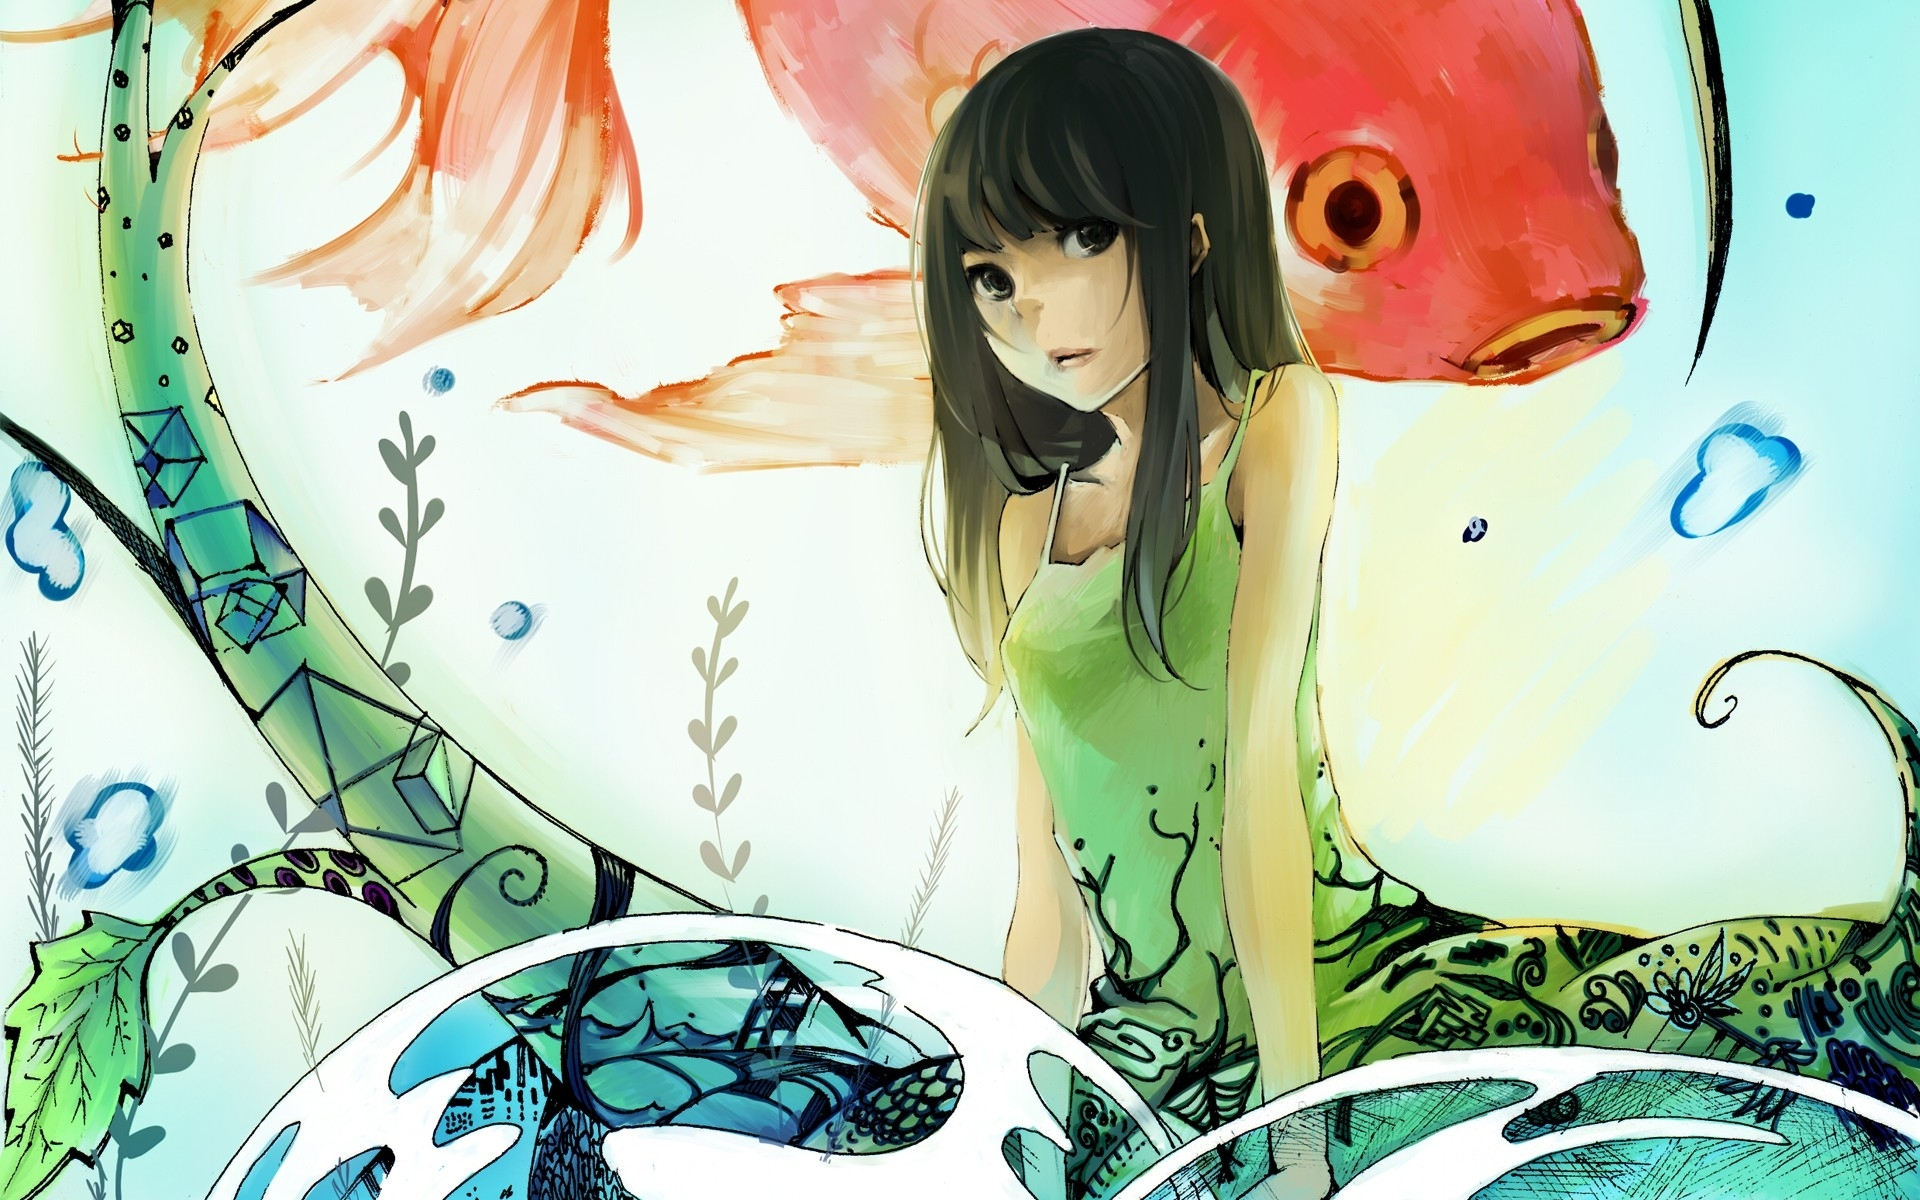 1920x1200 Cute Anime Girl & Fishes desktop PC and Mac